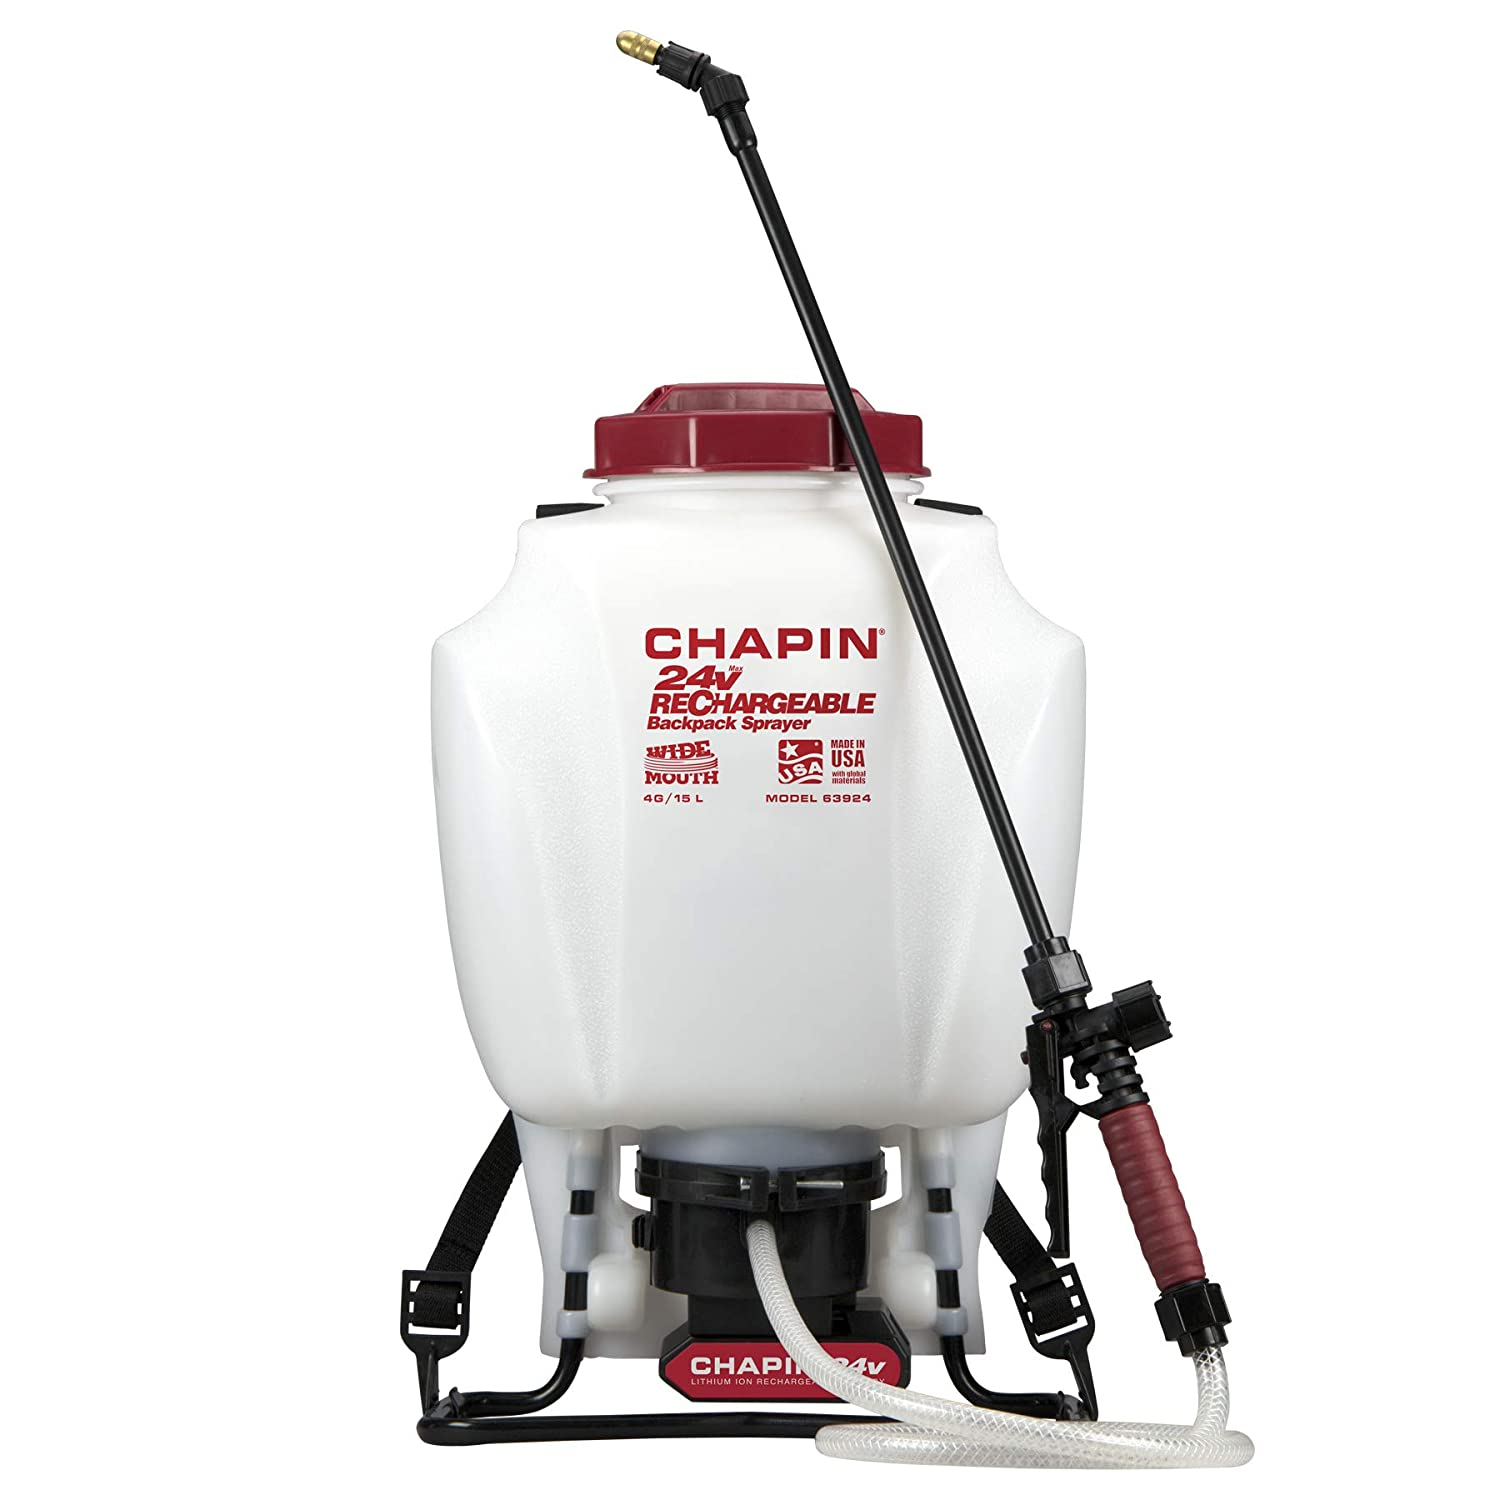 Chapin 63924 4-Gallon 24-volt Extended Spray Time Battery Backpack Sprayer For Fertilizer, Herbicides and Pesticides, 4-Gallon (1 Sprayer/Package)